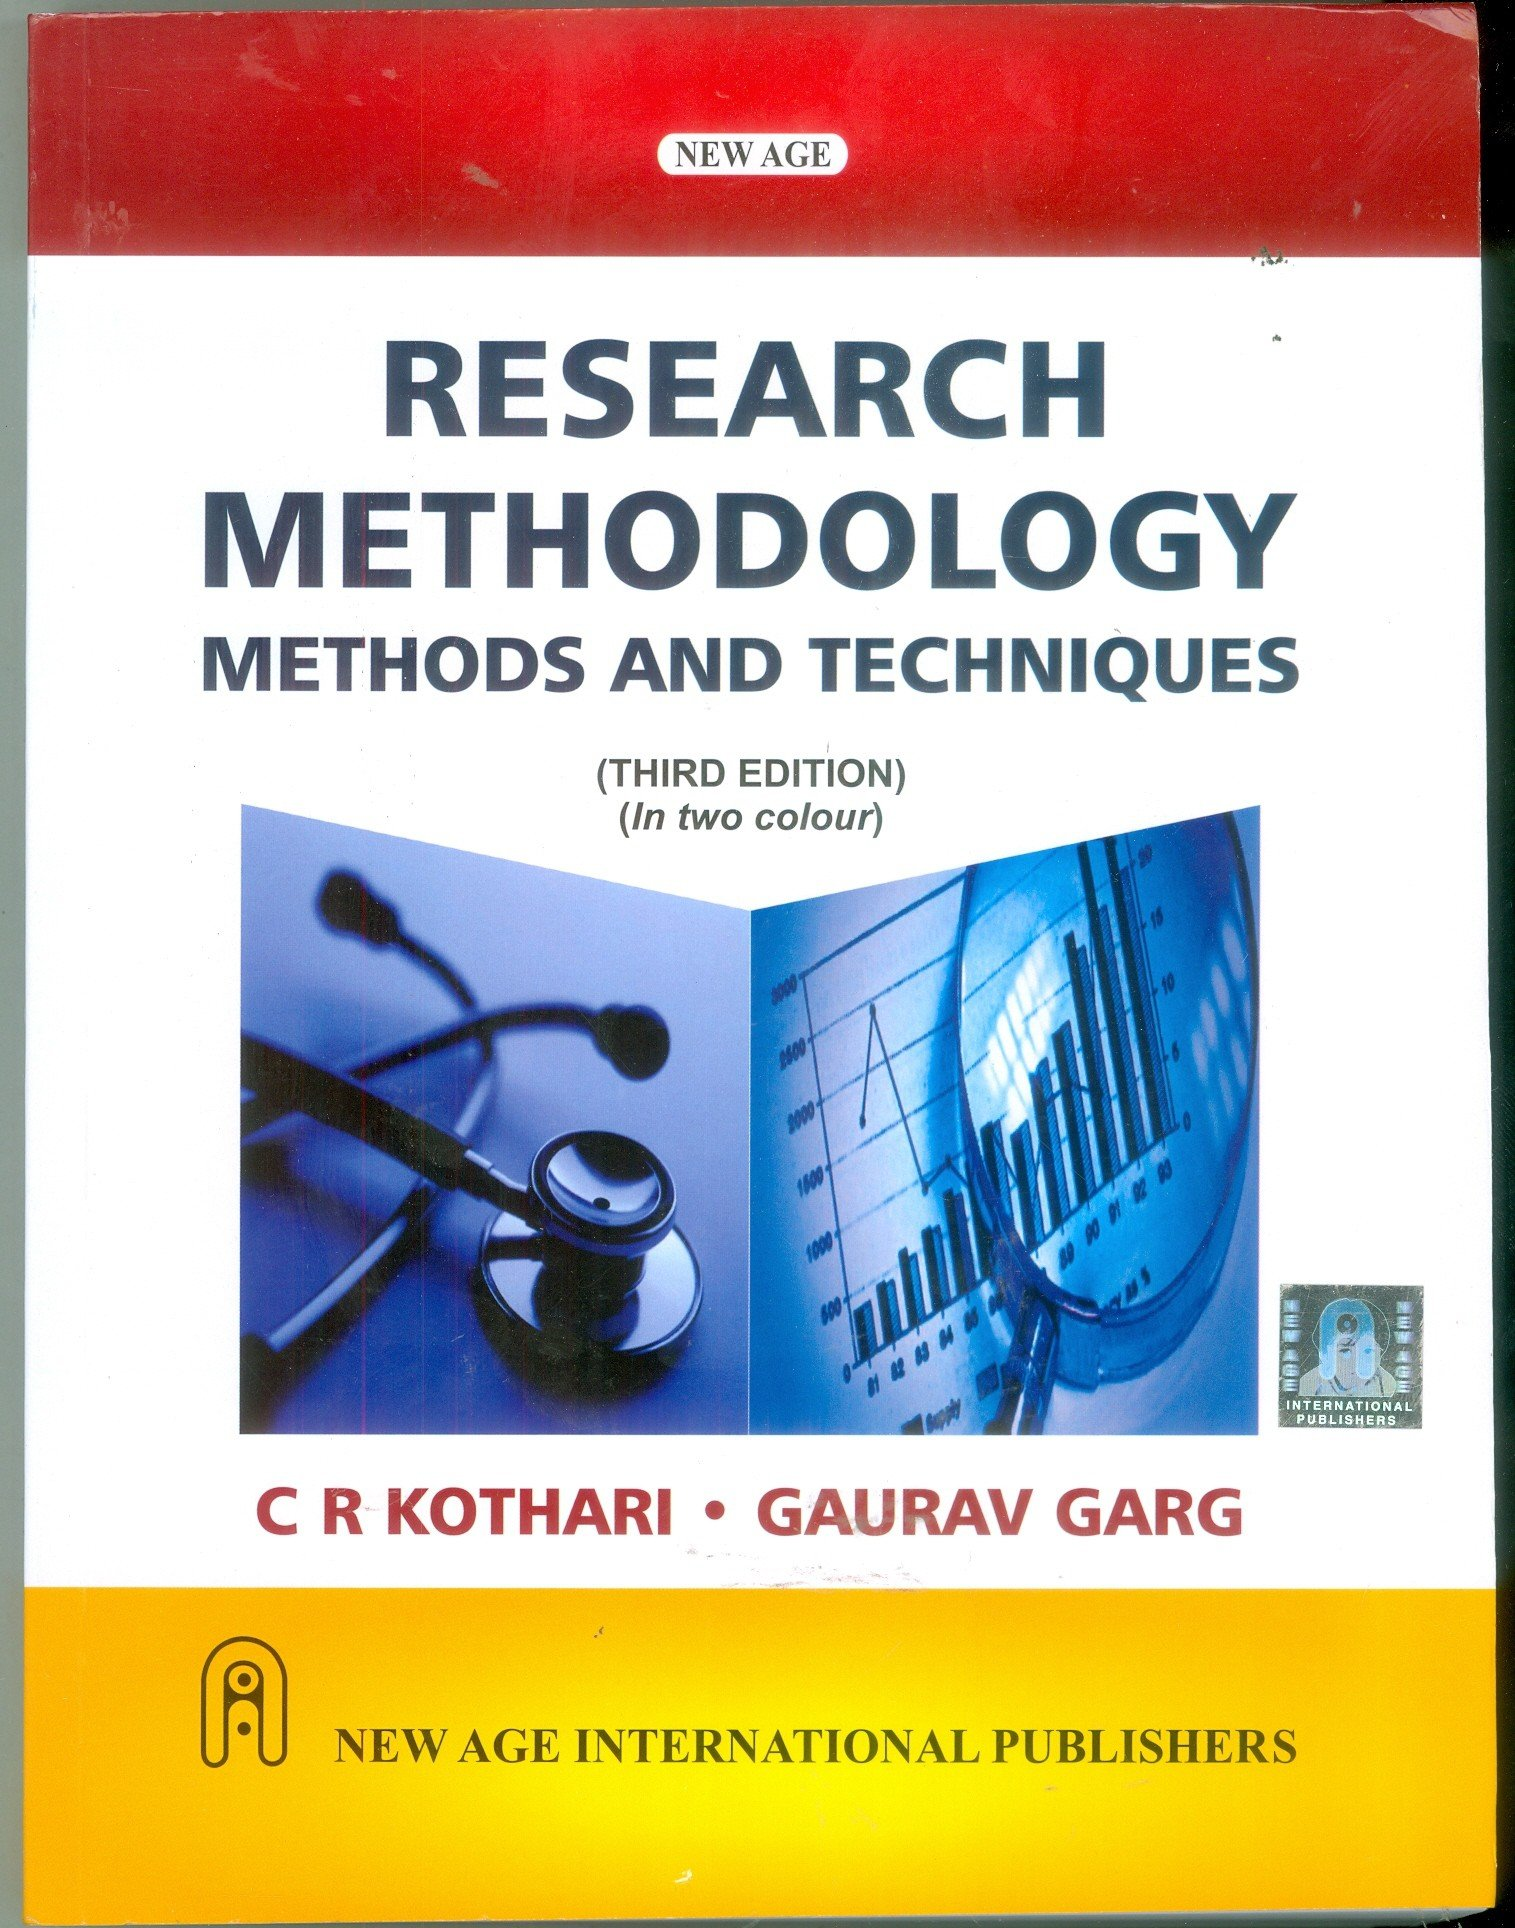 Research Methodology Kothari Ebook